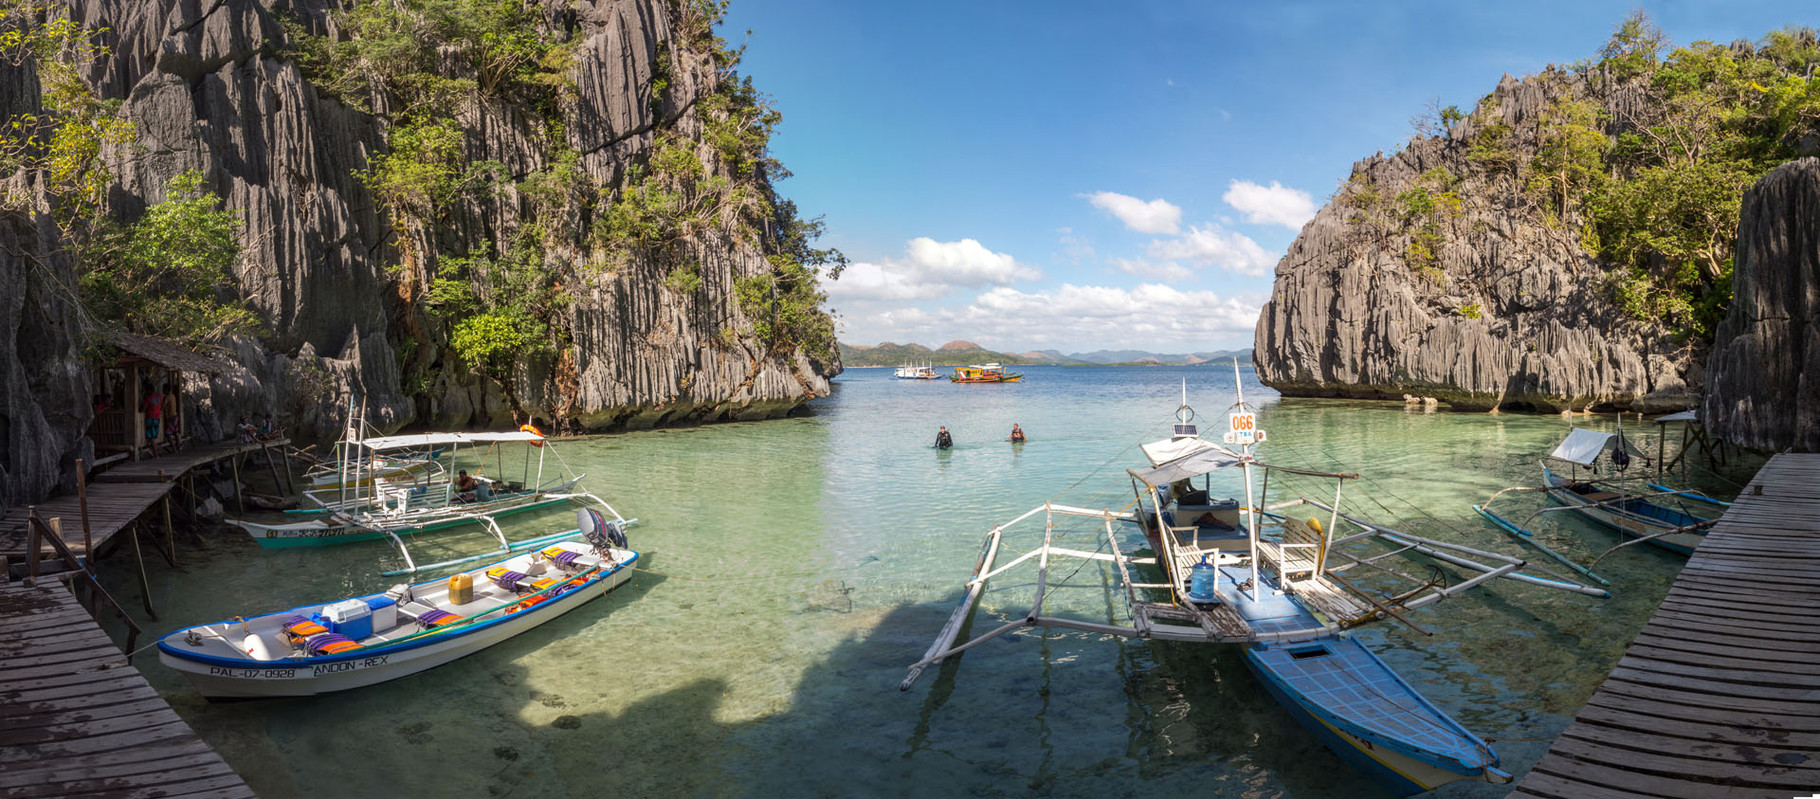 Entrance to the Baracuda lake, Coron